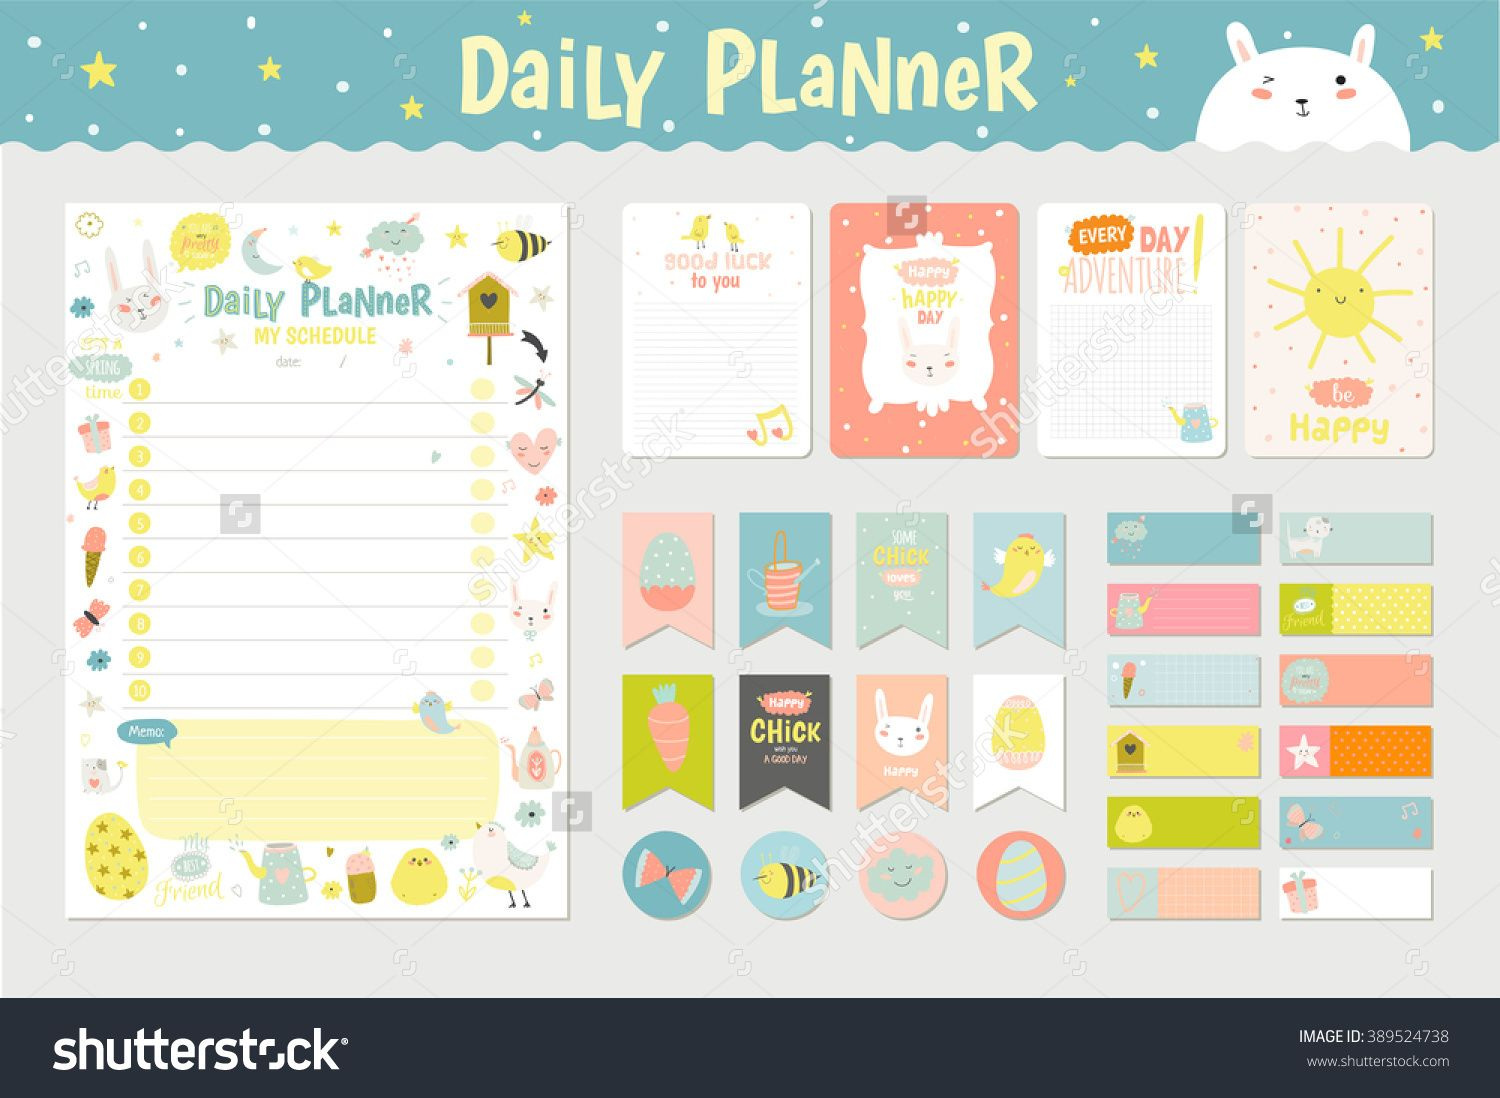 Pin by julia on daily planner pinterest planners cute calendar daily planner template for beautiful diary with vector character and funny kids illustrations pronofoot35fo Images